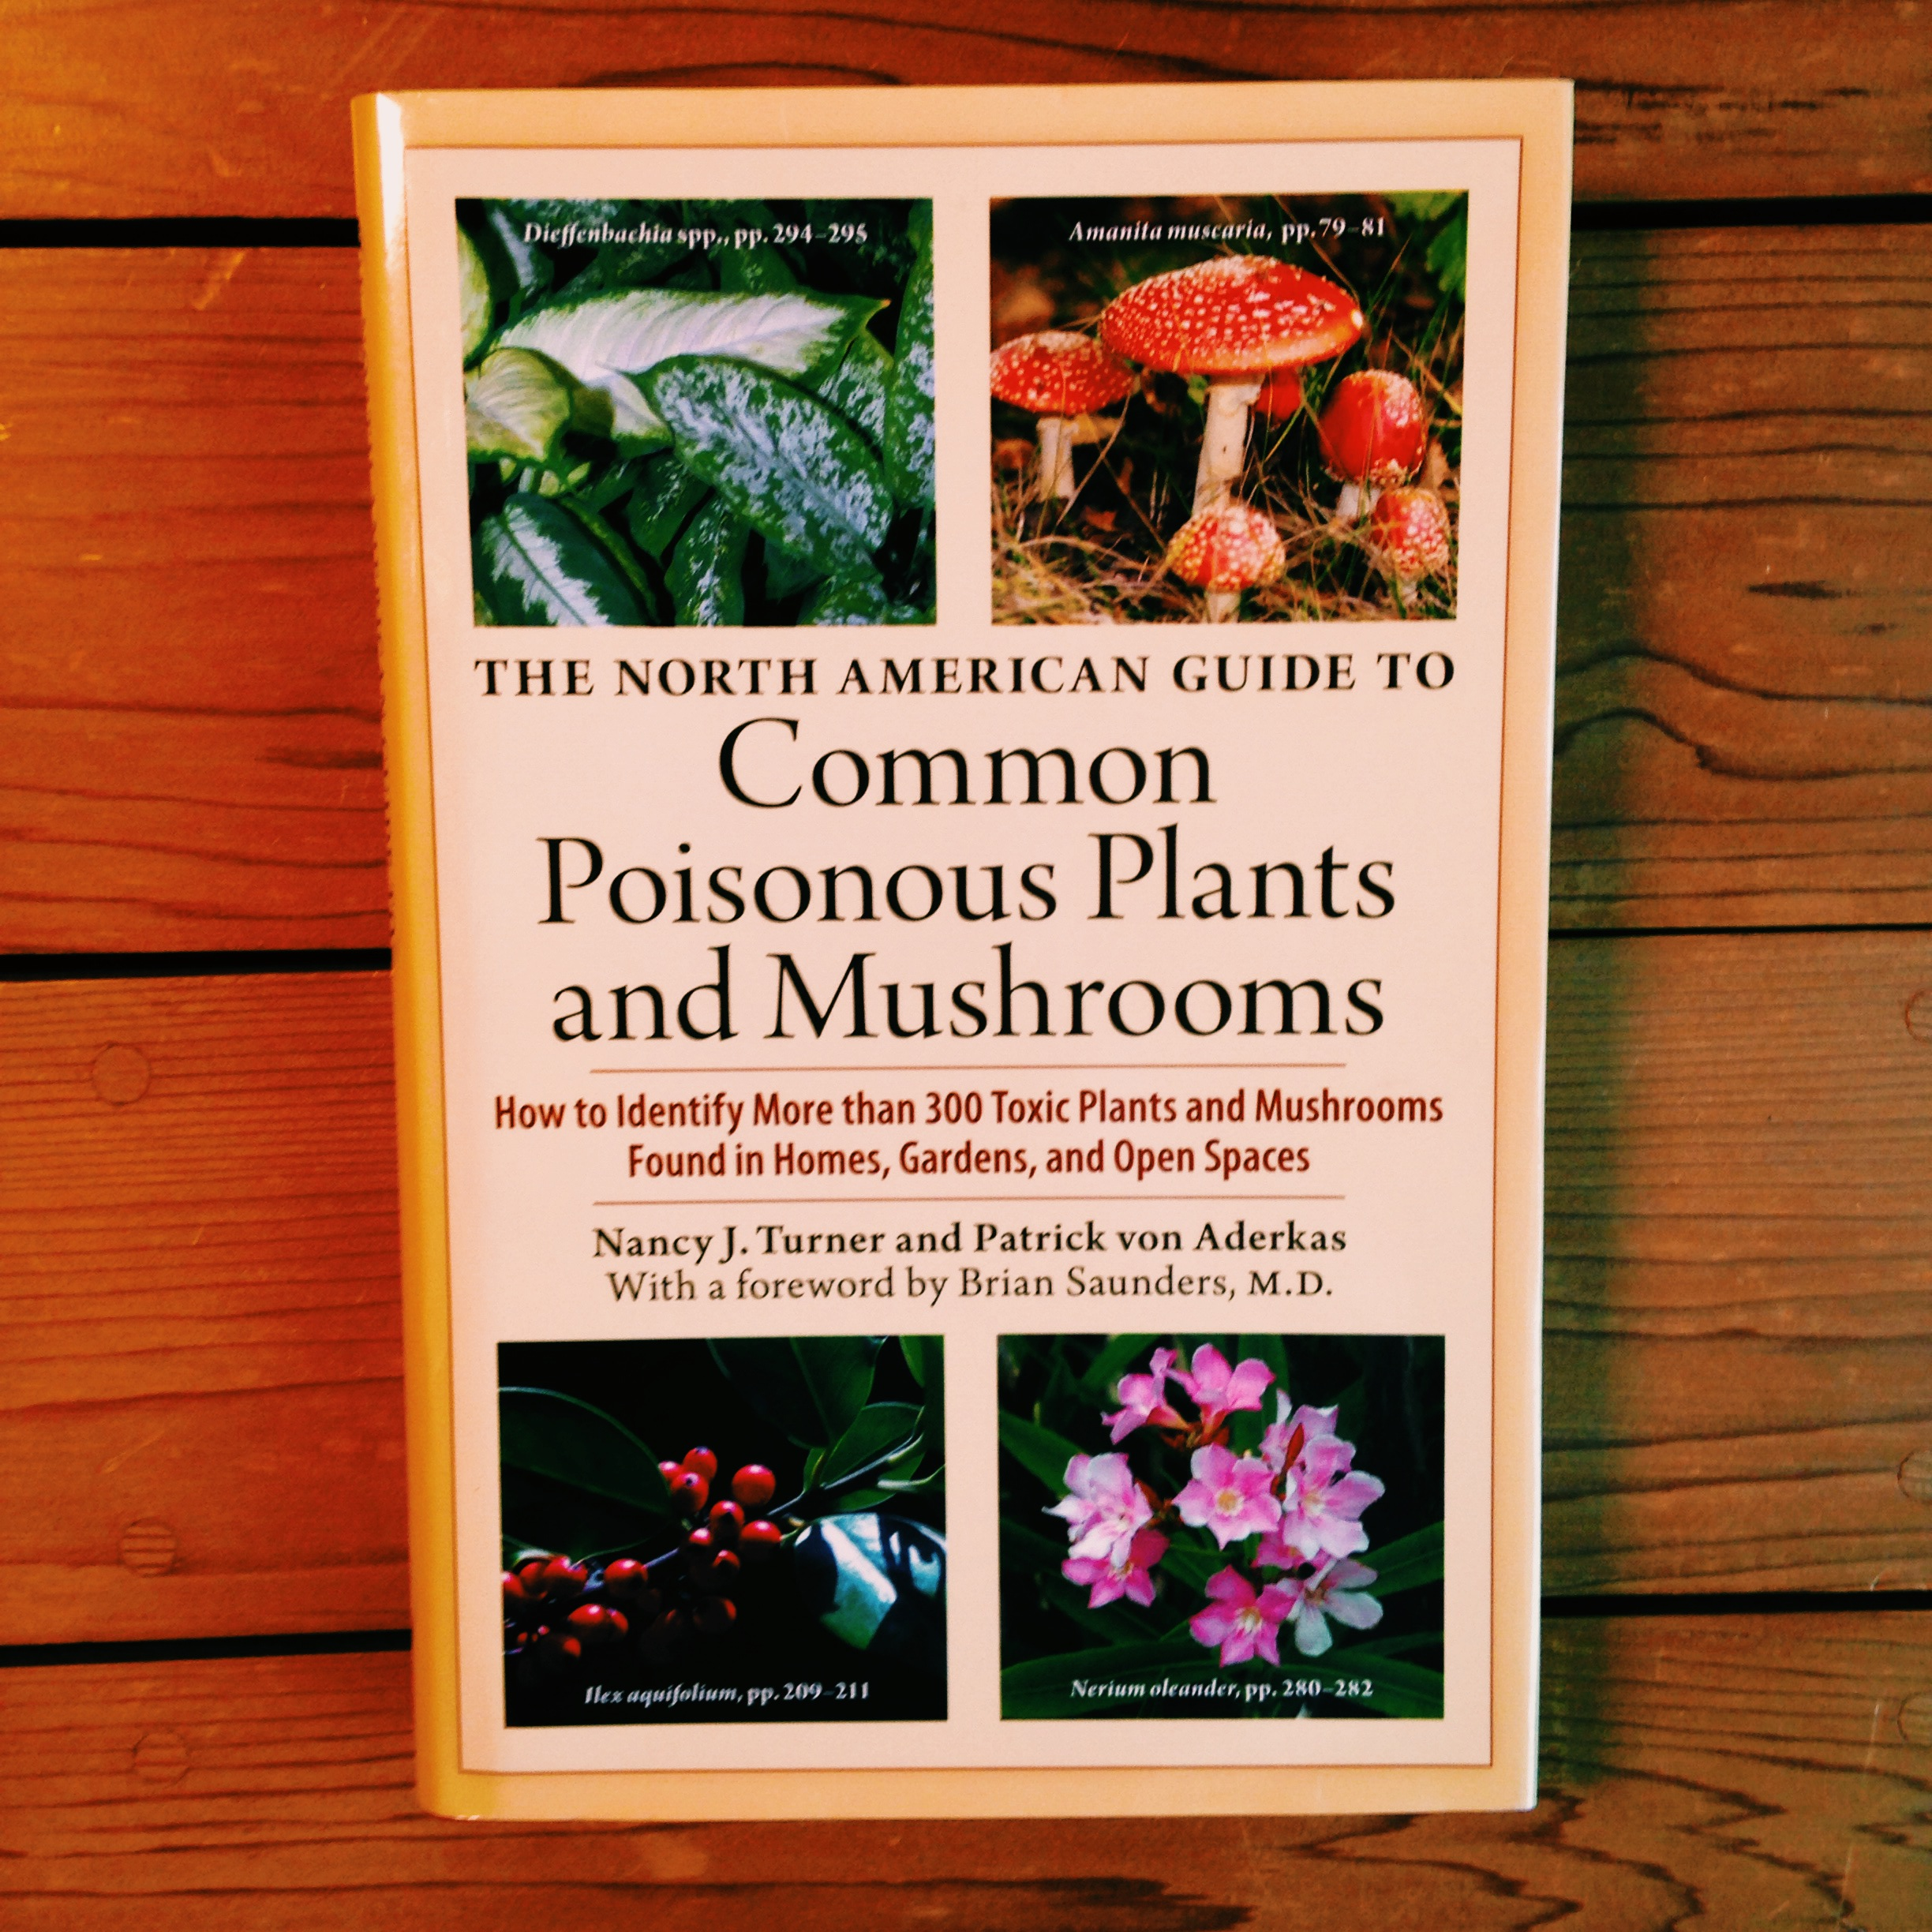 The North American Guide to Common Poisonous Plants and Mushrooms